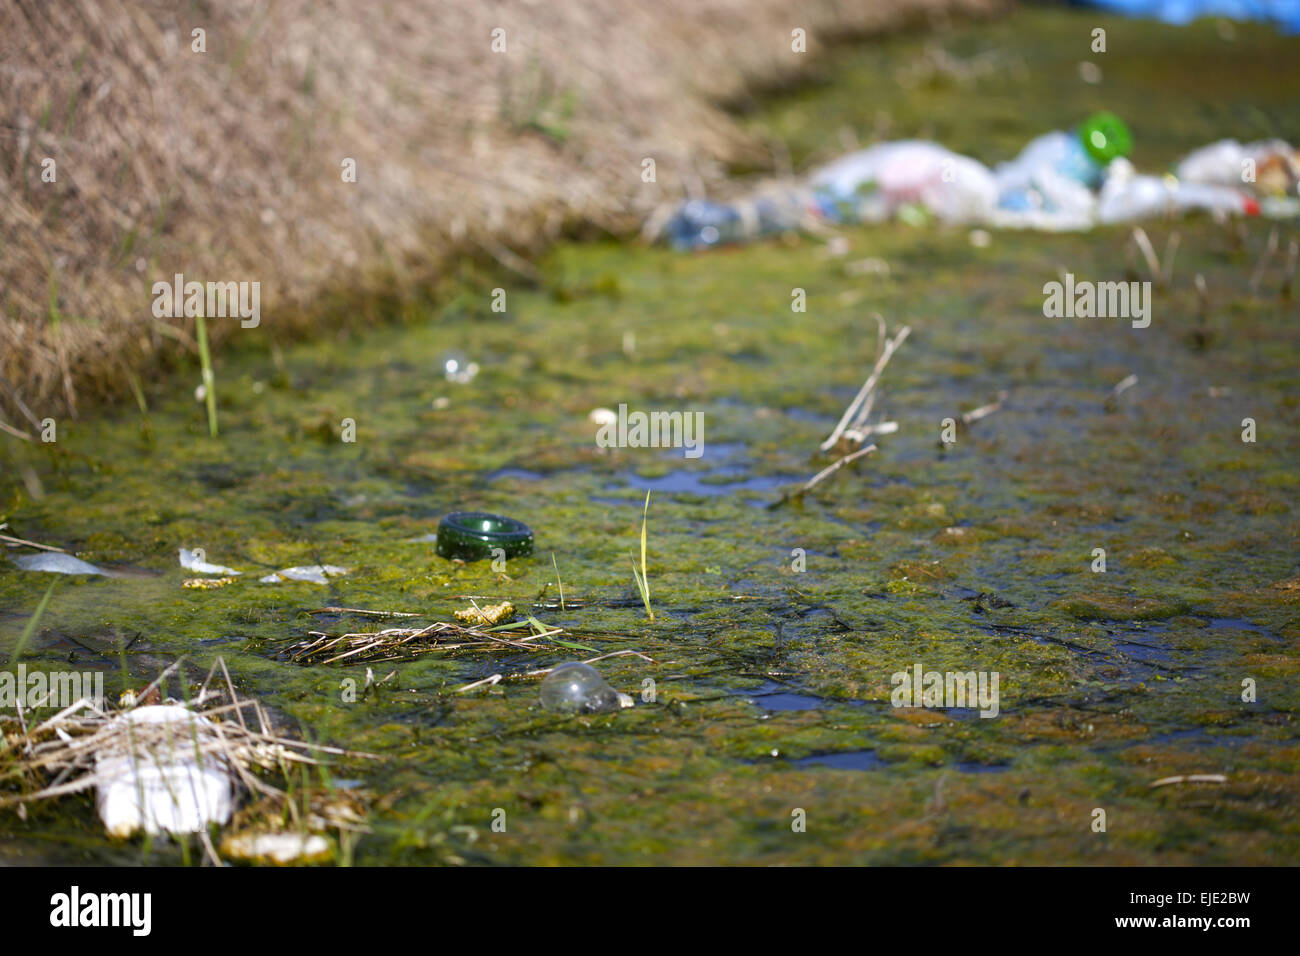 Polluted river with a selective focus on green water and a bottle in it - Stock Image